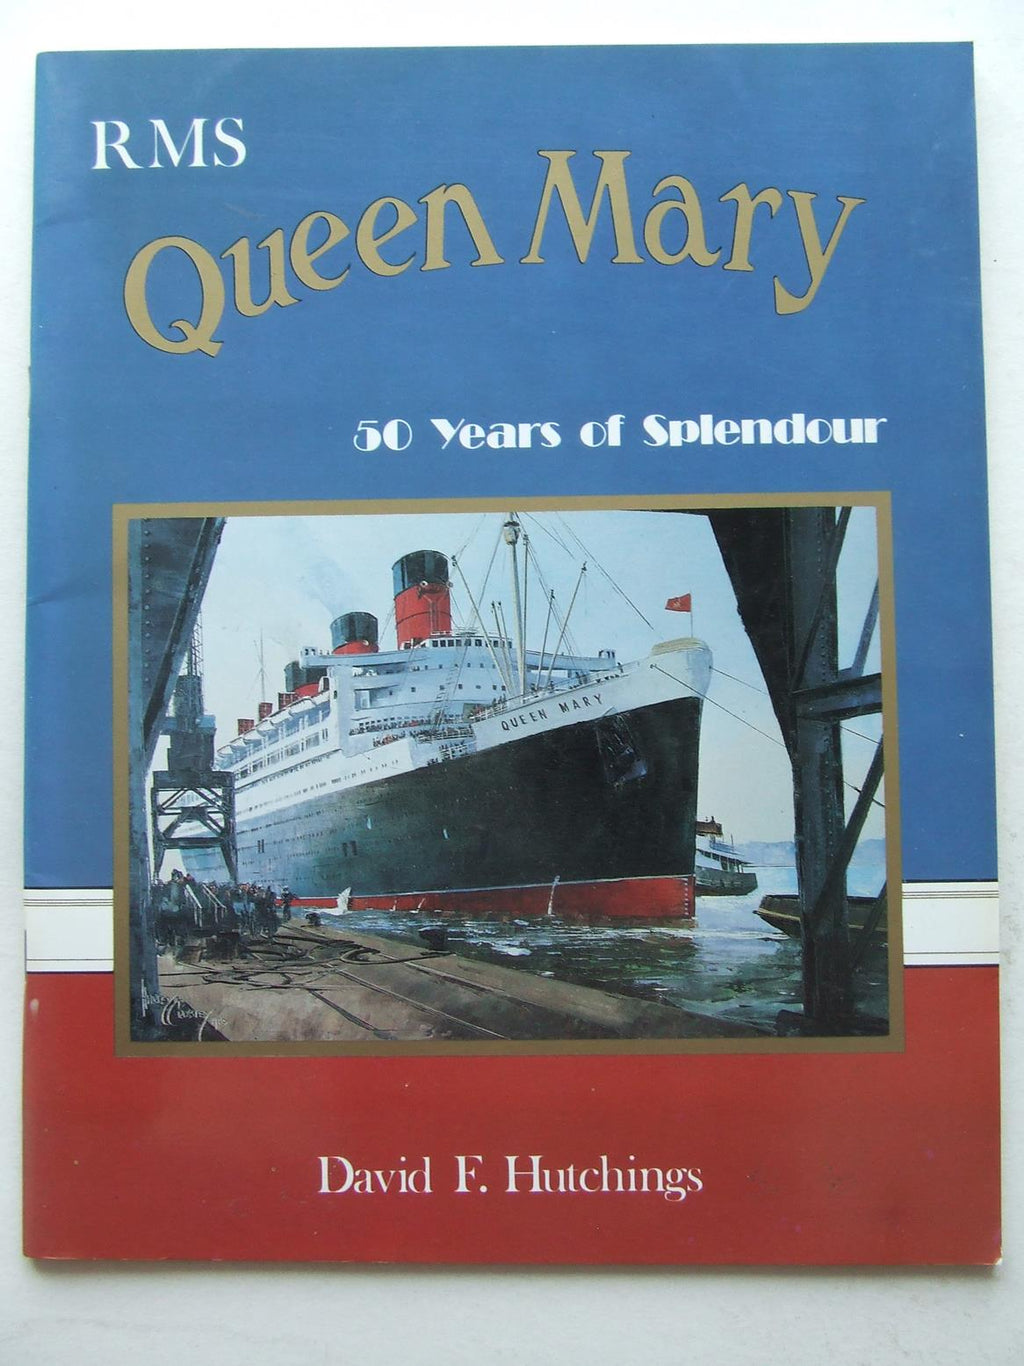 RMS Queen Mary, 50 years of splendour